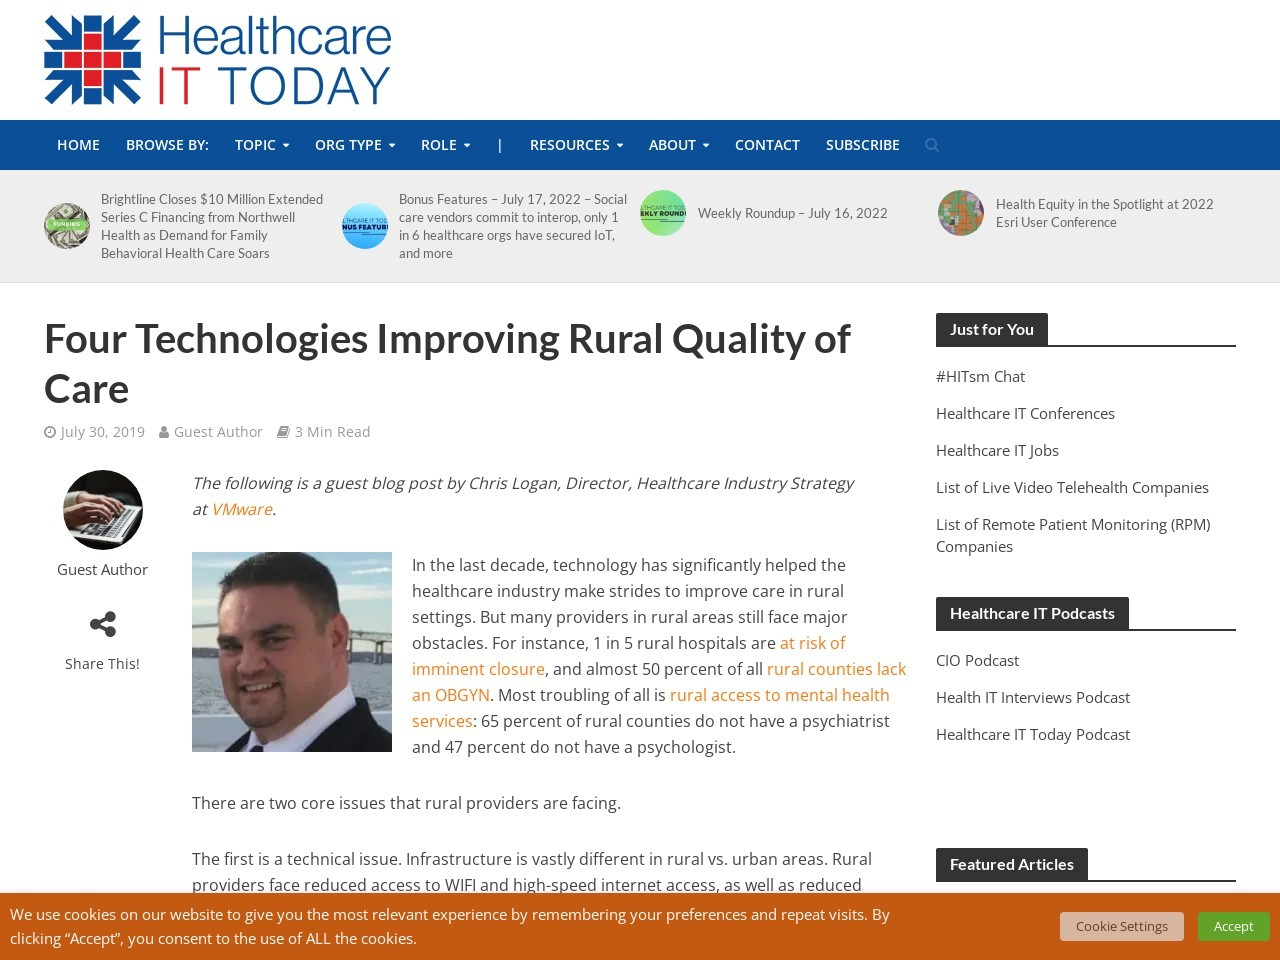 Four Technologies Improving Rural Quality of Care